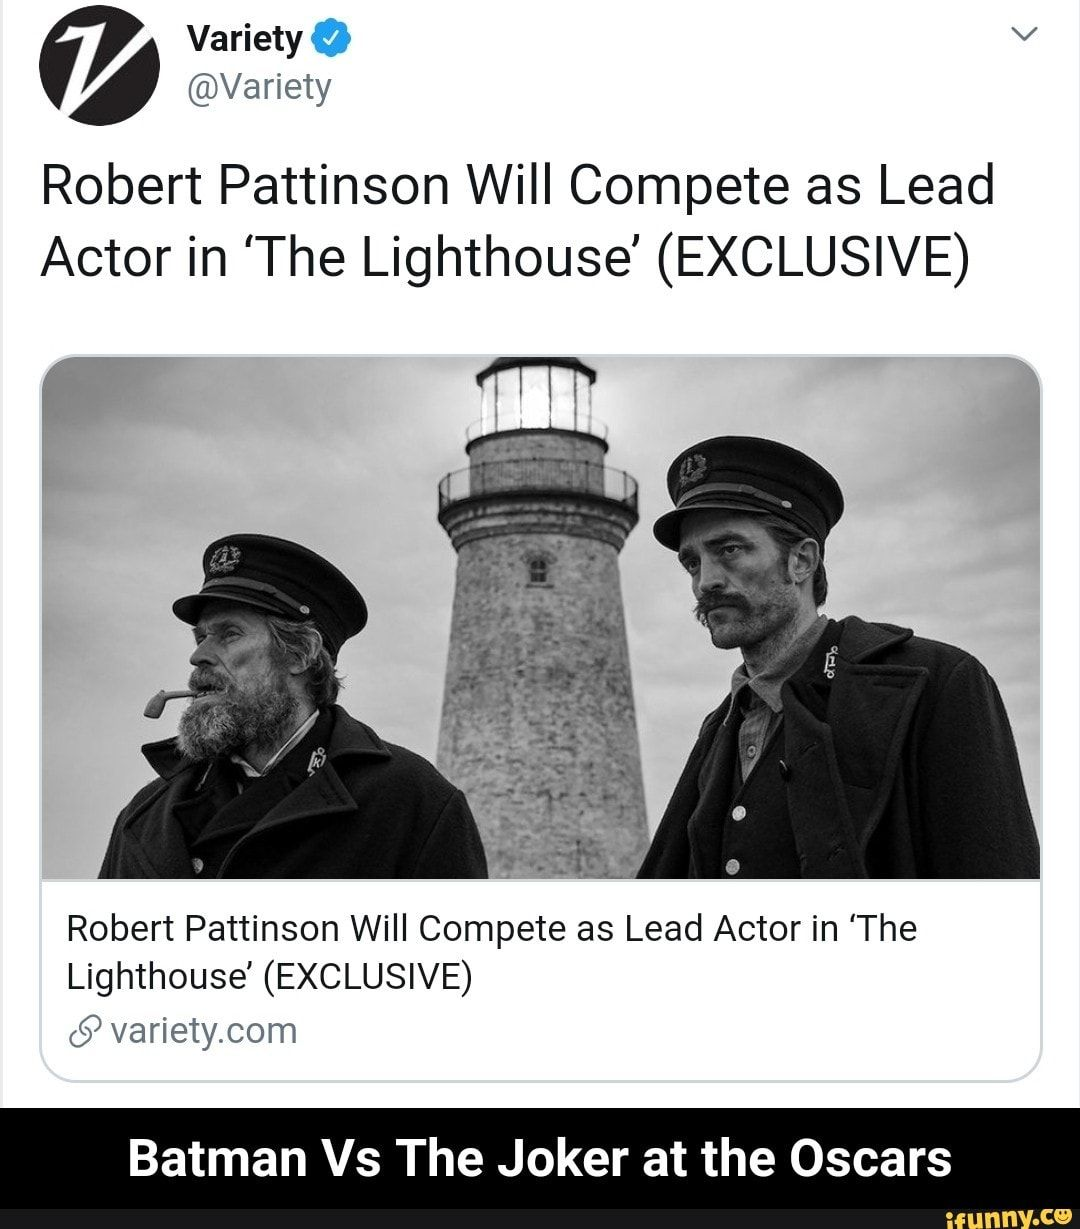 Robert Pattinson Will Compete as Lead Actor in 'The